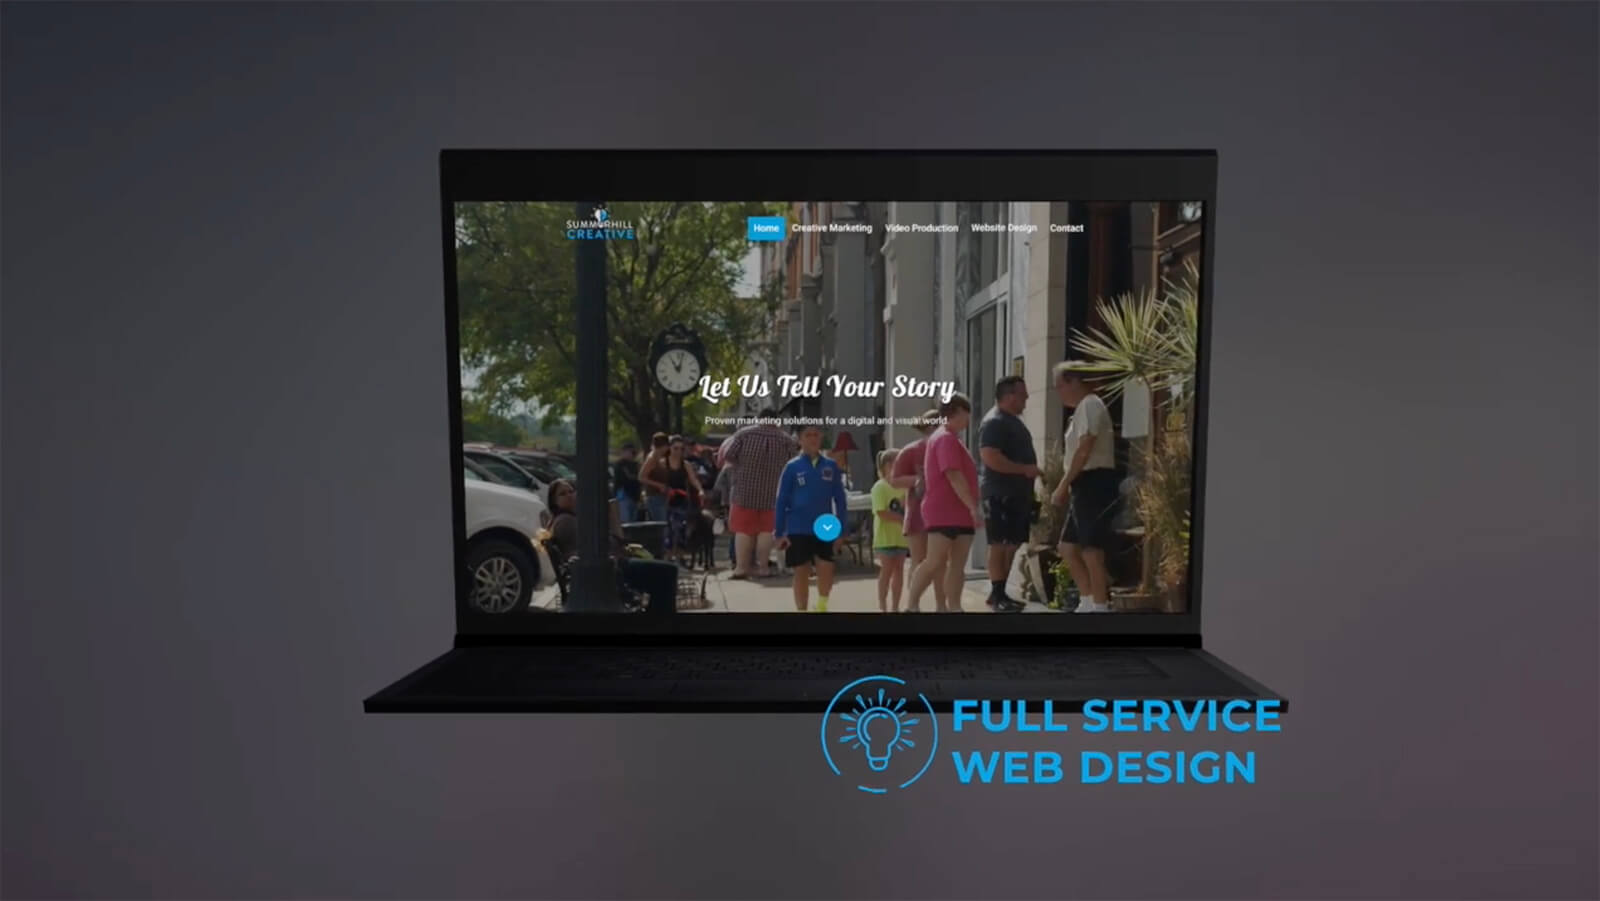 website design video image-summerhill creative